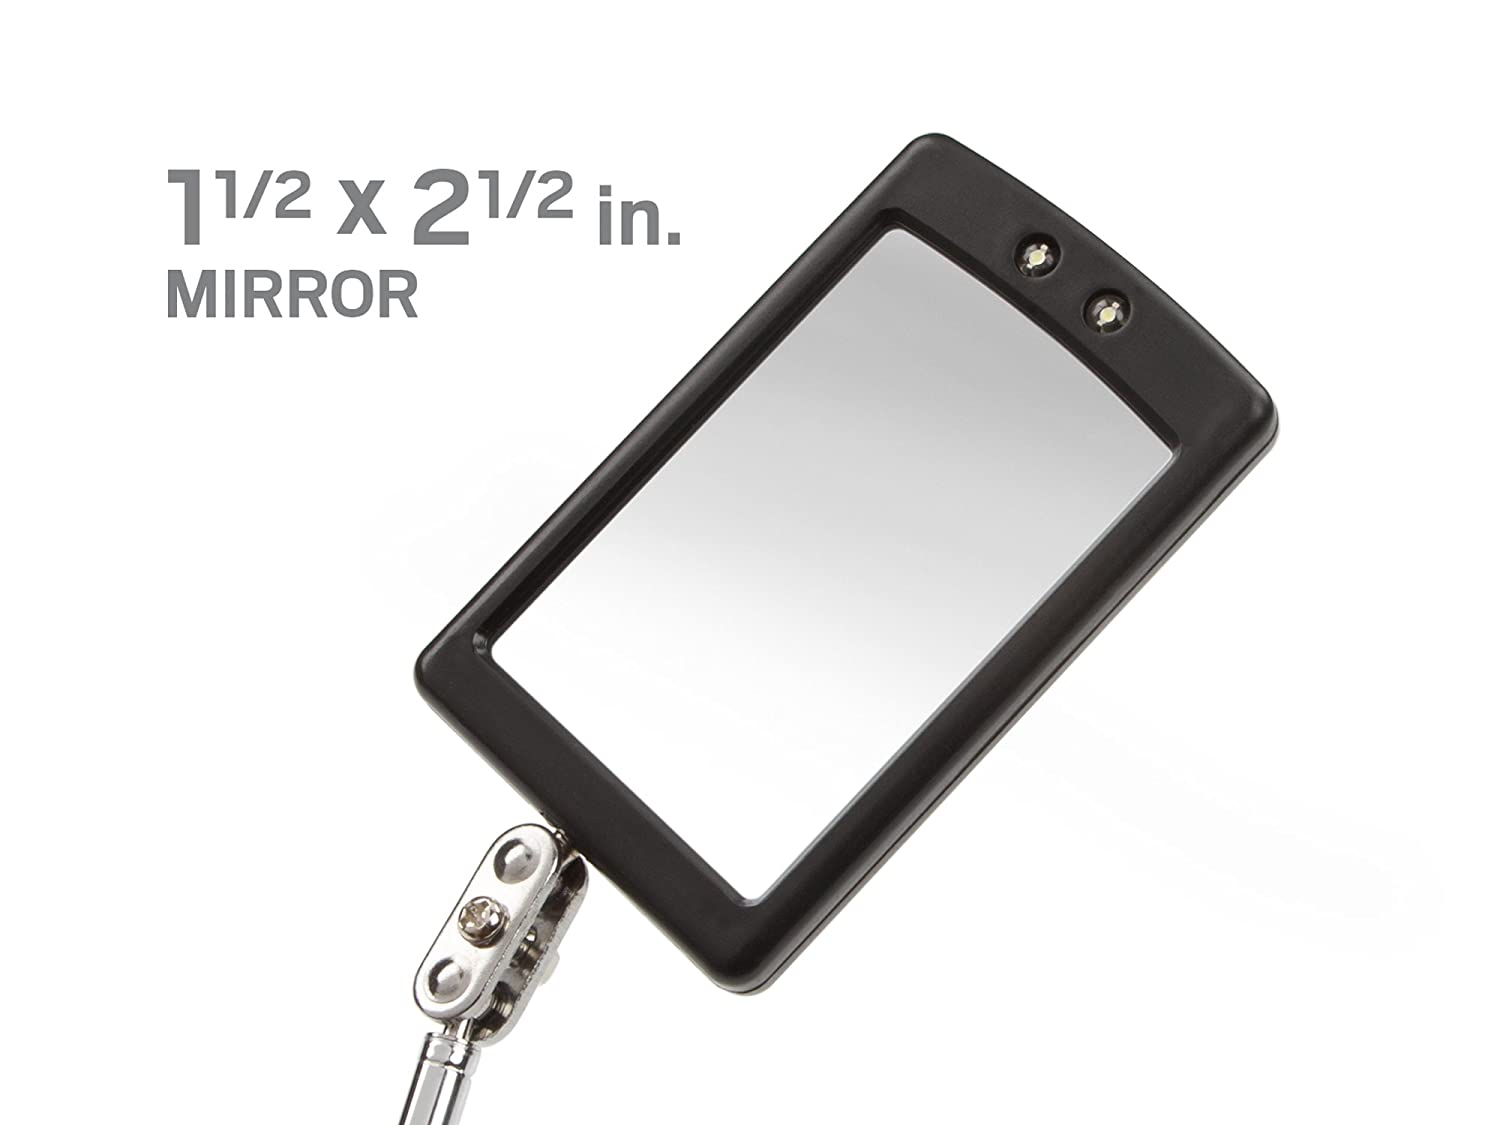 hand holding mirror drawing. Amazon.com: TEKTON 7609 Telescoping Lighted Inspection Mirror: Home Improvement Hand Holding Mirror Drawing .